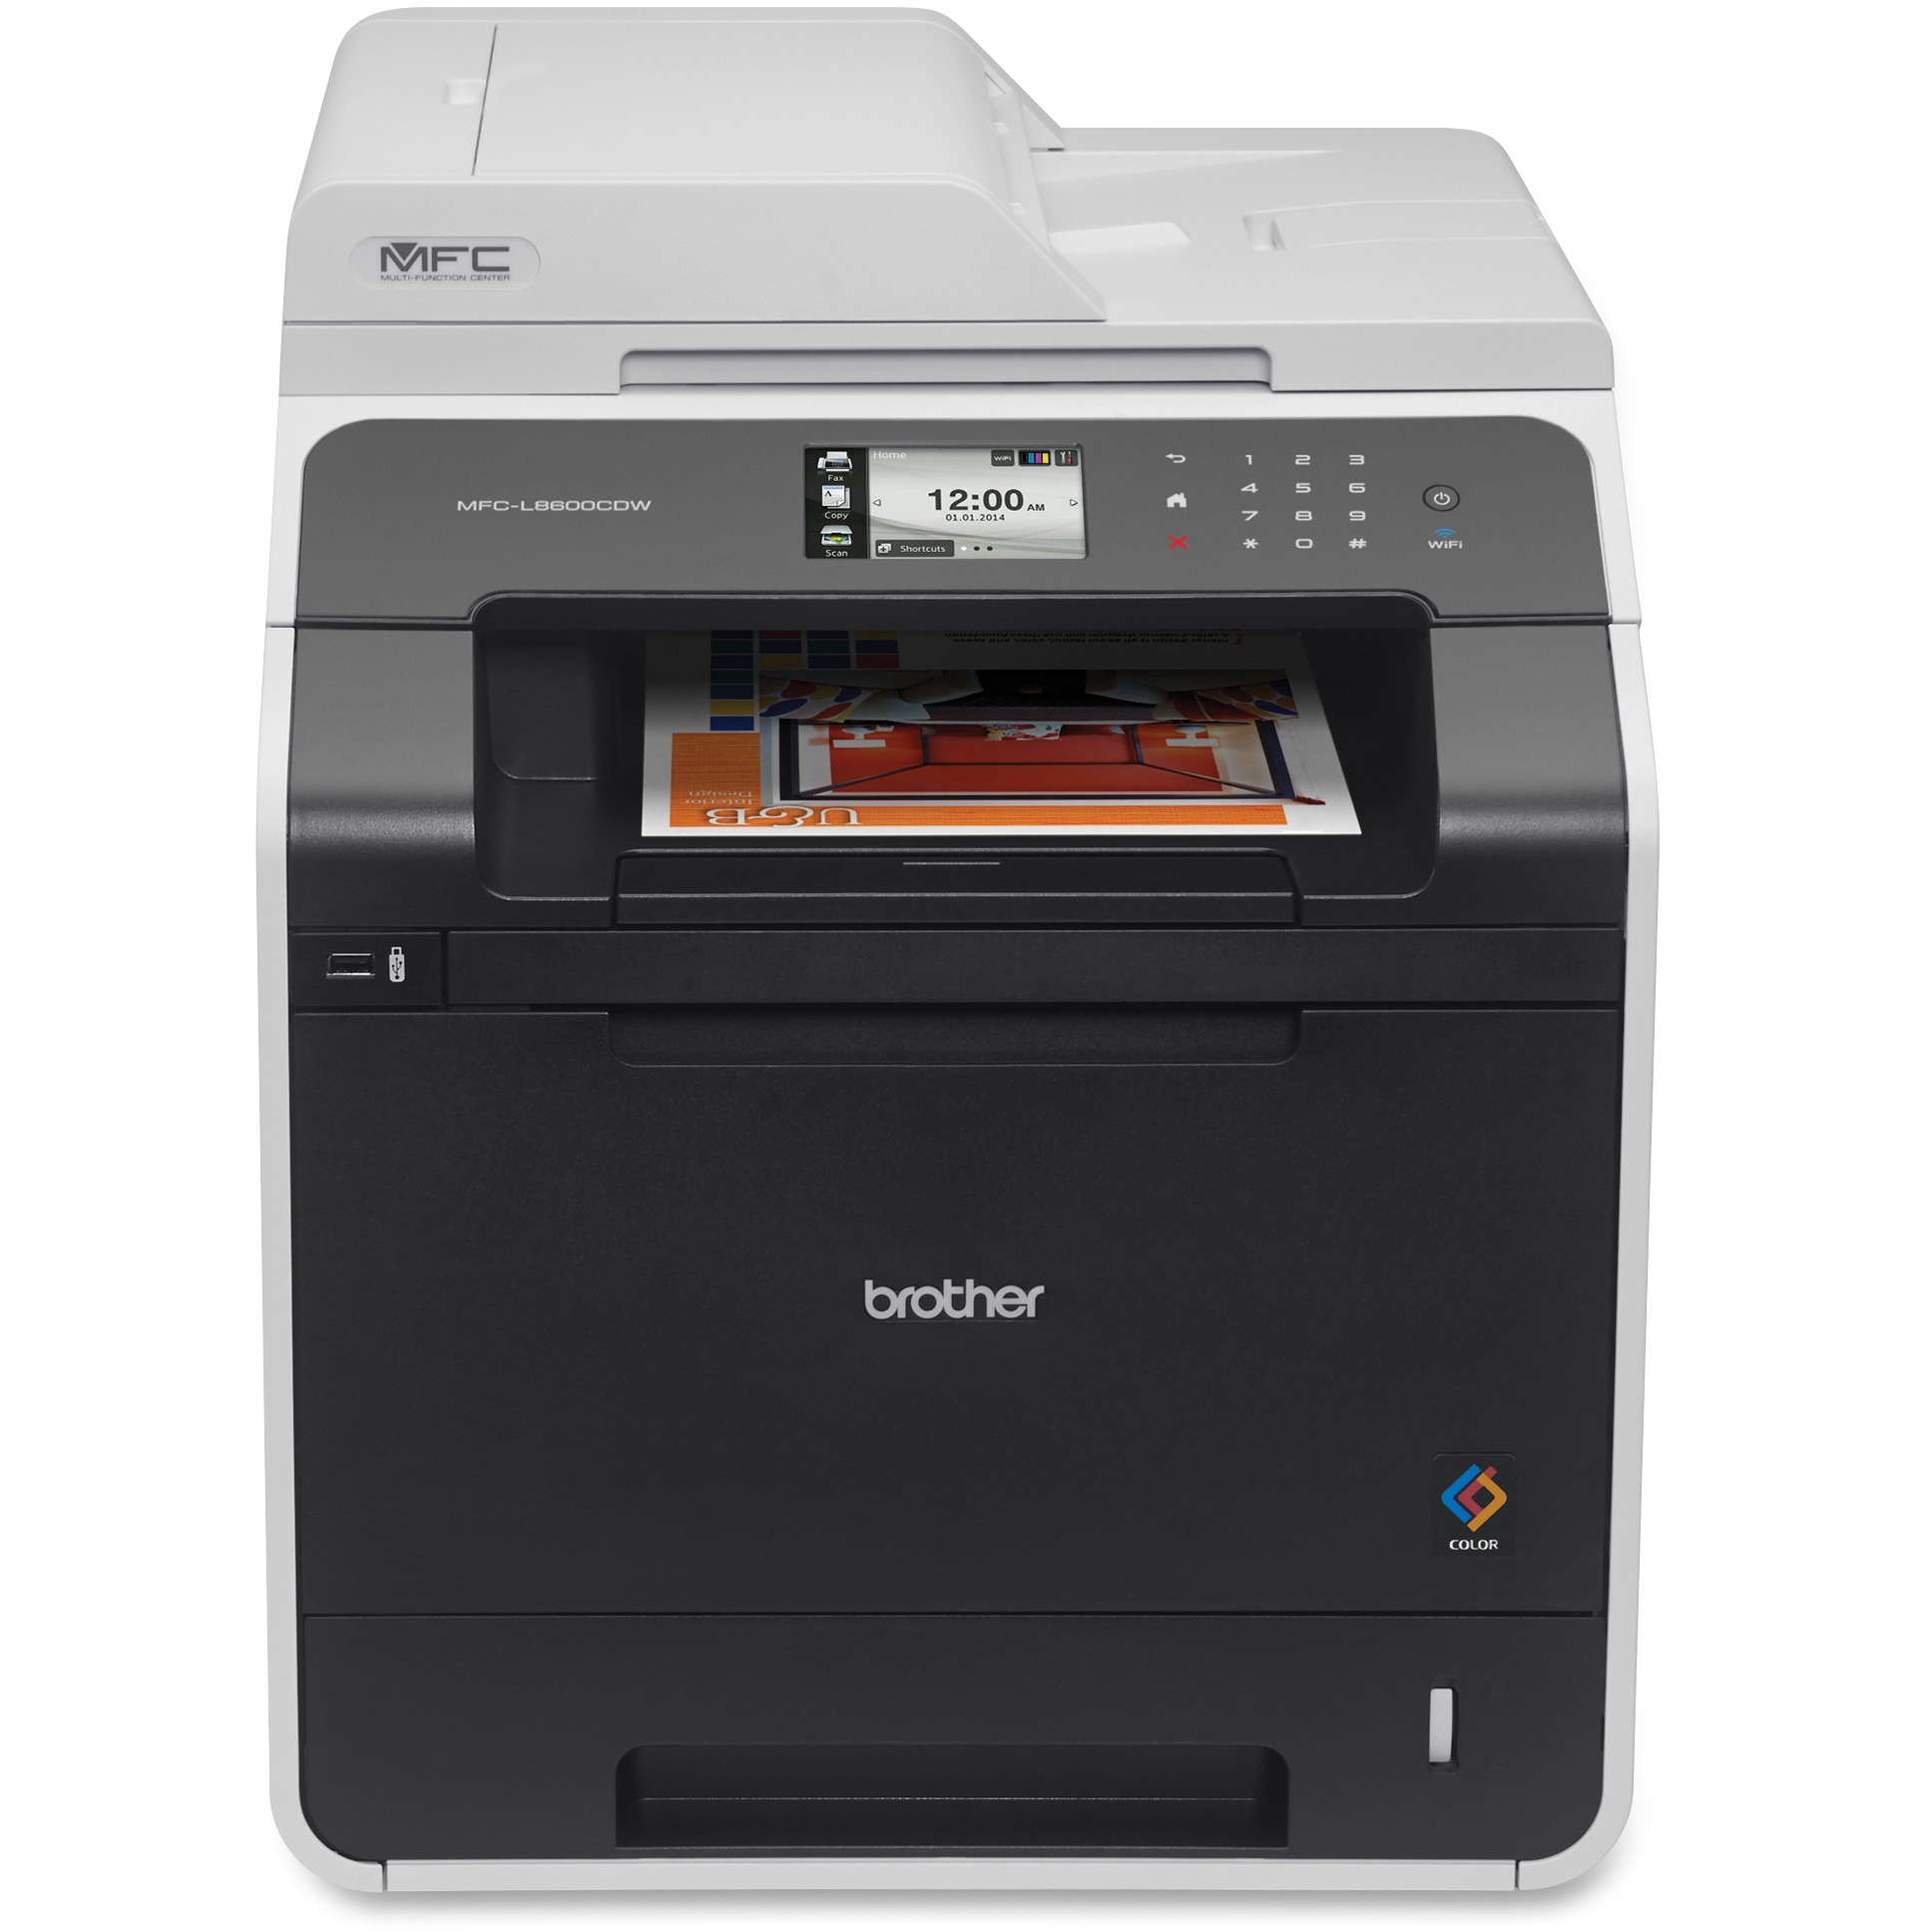 Brother MFC-L8600CDW Color Laser All-in-One with Wireless...